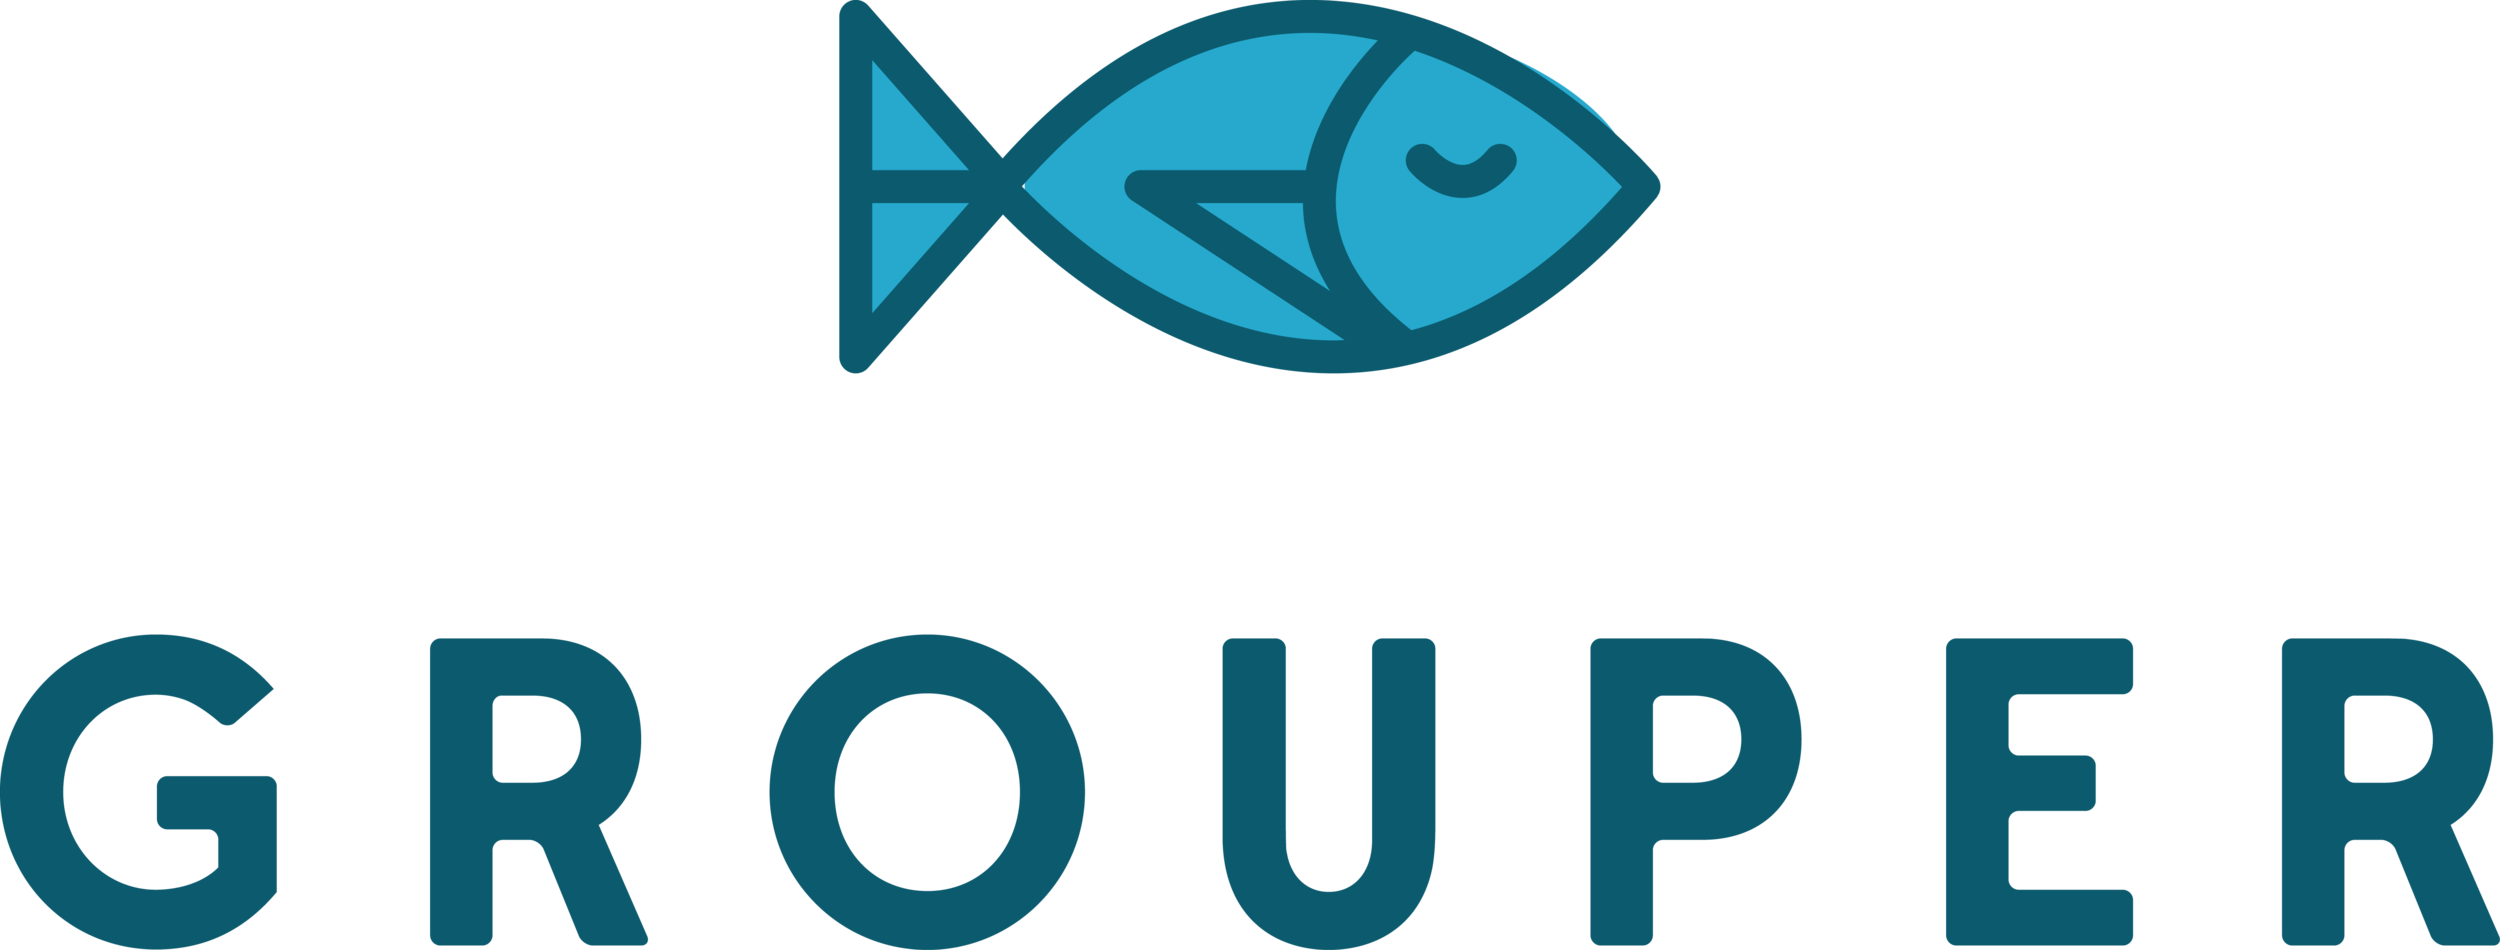 grouper-fish-logo.png